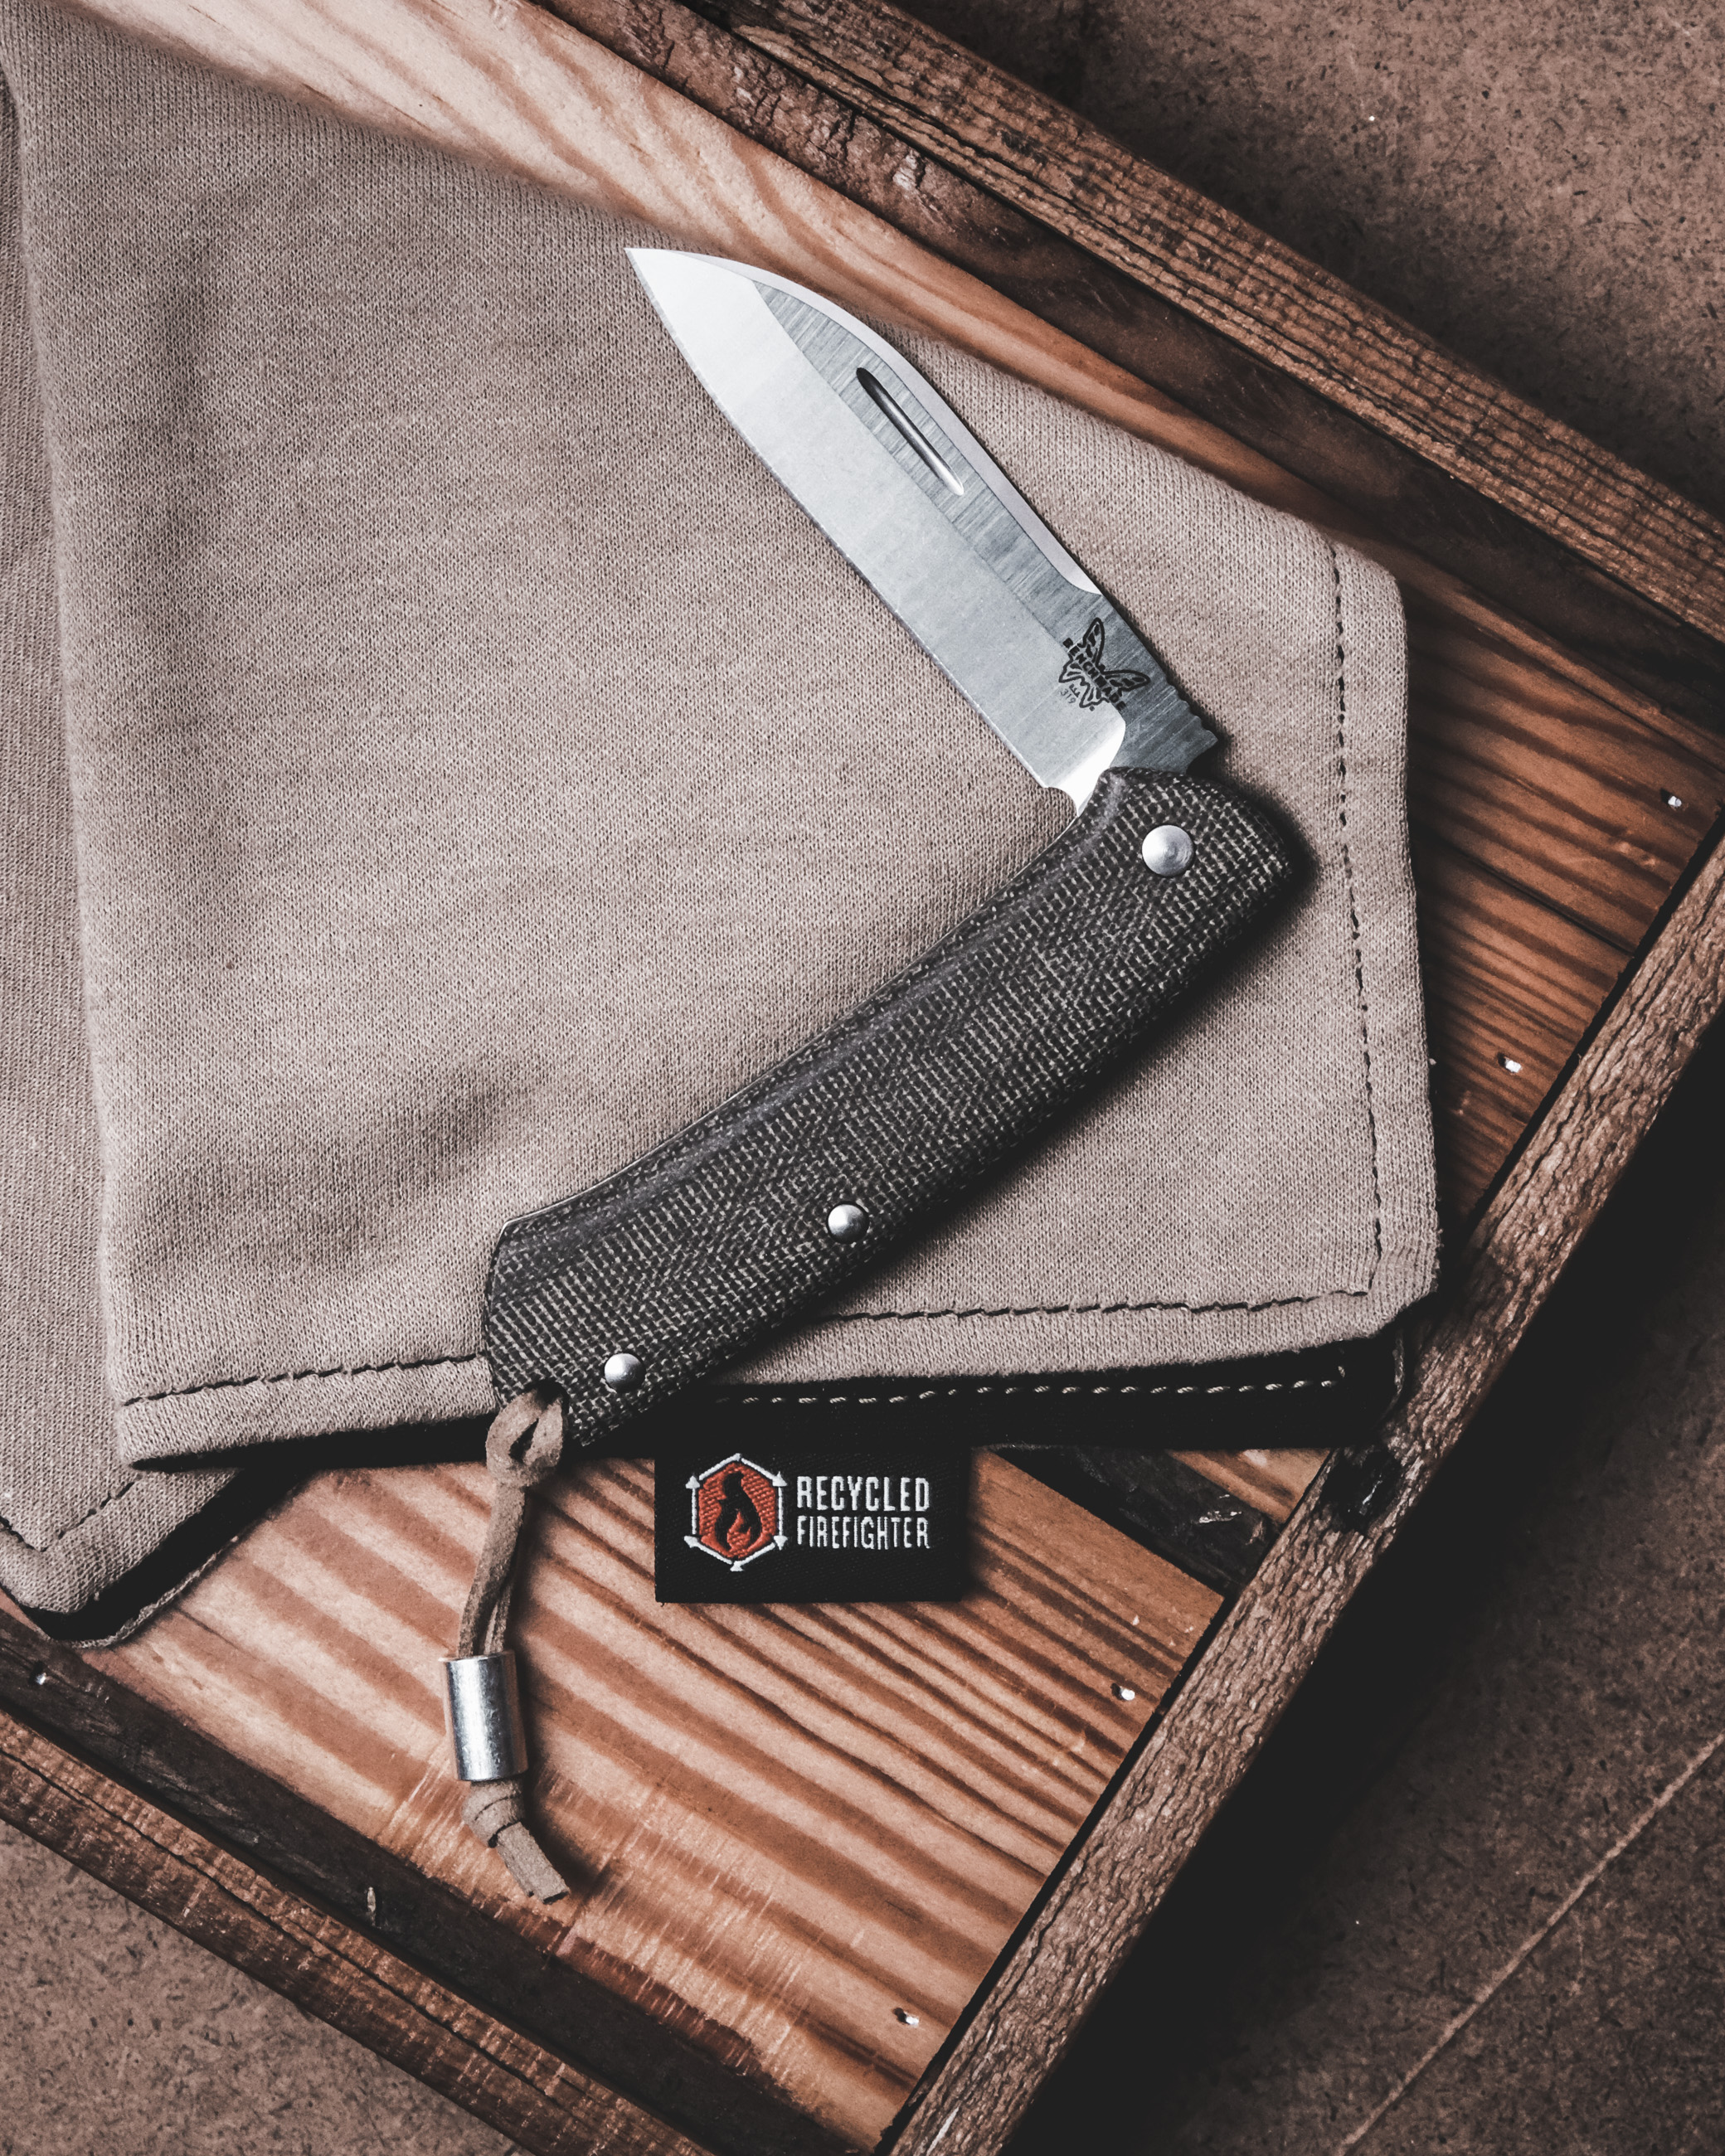 National Knife Day With My Benchmade Proper Anthony Awaken